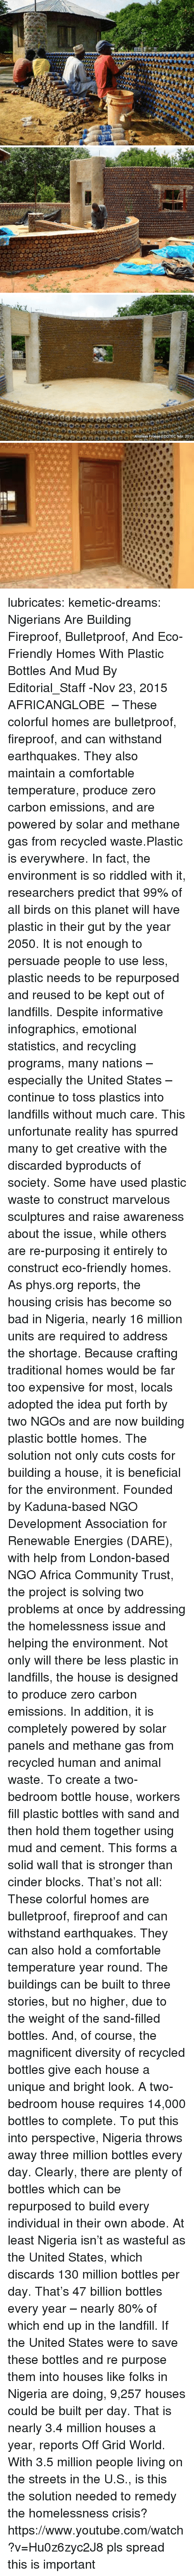 Diversity: lubricates:  kemetic-dreams:   Nigerians Are Building Fireproof, Bulletproof, And Eco-Friendly Homes With Plastic Bottles And Mud By Editorial_Staff -Nov 23, 2015   AFRICANGLOBE  – These colorful homes are bulletproof, fireproof, and can withstand earthquakes. They also maintain a comfortable temperature, produce zero carbon emissions, and are powered by solar and methane gas from recycled waste.Plastic is everywhere. In fact, the environment is so riddled with it, researchers predict that 99% of all birds on this planet will have plastic in their gut by the year 2050. It is not enough to persuade people to use less, plastic needs to be repurposed and reused to be kept out of landfills. Despite informative infographics, emotional statistics, and recycling programs, many nations – especially the United States – continue to toss plastics into landfills without much care. This unfortunate reality has spurred many to get creative with the discarded byproducts of society. Some have used plastic waste to construct marvelous sculptures and raise awareness about the issue, while others are re-purposing it entirely to construct eco-friendly homes. As phys.org reports, the housing crisis has become so bad in Nigeria, nearly 16 million units are required to address the shortage. Because crafting traditional homes would be far too expensive for most, locals adopted the idea put forth by two NGOs and are now building plastic bottle homes. The solution not only cuts costs for building a house, it is beneficial for the environment. Founded by Kaduna-based NGO Development Association for Renewable Energies (DARE), with help from London-based NGO Africa Community Trust, the project is solving two problems at once by addressing the homelessness issue and helping the environment. Not only will there be less plastic in landfills, the house is designed to produce zero carbon emissions. In addition, it is completely powered by solar panels and methane gas from recycled human and animal waste. To create a two-bedroom bottle house, workers fill plastic bottles with sand and then hold them together using mud and cement. This forms a solid wall that is stronger than cinder blocks. That's not all: These colorful homes are bulletproof, fireproof and can withstand earthquakes. They can also hold a comfortable temperature year round. The buildings can be built to three stories, but no higher, due to the weight of the sand-filled bottles. And, of course, the magnificent diversity of recycled bottles give each house a unique and bright look. A two-bedroom house requires 14,000 bottles to complete. To put this into perspective, Nigeria throws away three million bottles every day. Clearly, there are plenty of bottles which can be repurposed to build every individual in their own abode. At least Nigeria isn't as wasteful as the United States, which discards 130 million bottles per day. That's 47 billion bottles every year – nearly 80% of which end up in the landfill.  If the United States were to save these bottles and re purpose them into houses like folks in Nigeria are doing, 9,257 houses could be built per day. That is nearly 3.4 million houses a year, reports Off Grid World. With 3.5 million people living on the streets in the U.S., is this the solution needed to remedy the homelessness crisis? https://www.youtube.com/watch?v=Hu0z6zyc2J8  pls spread this is important